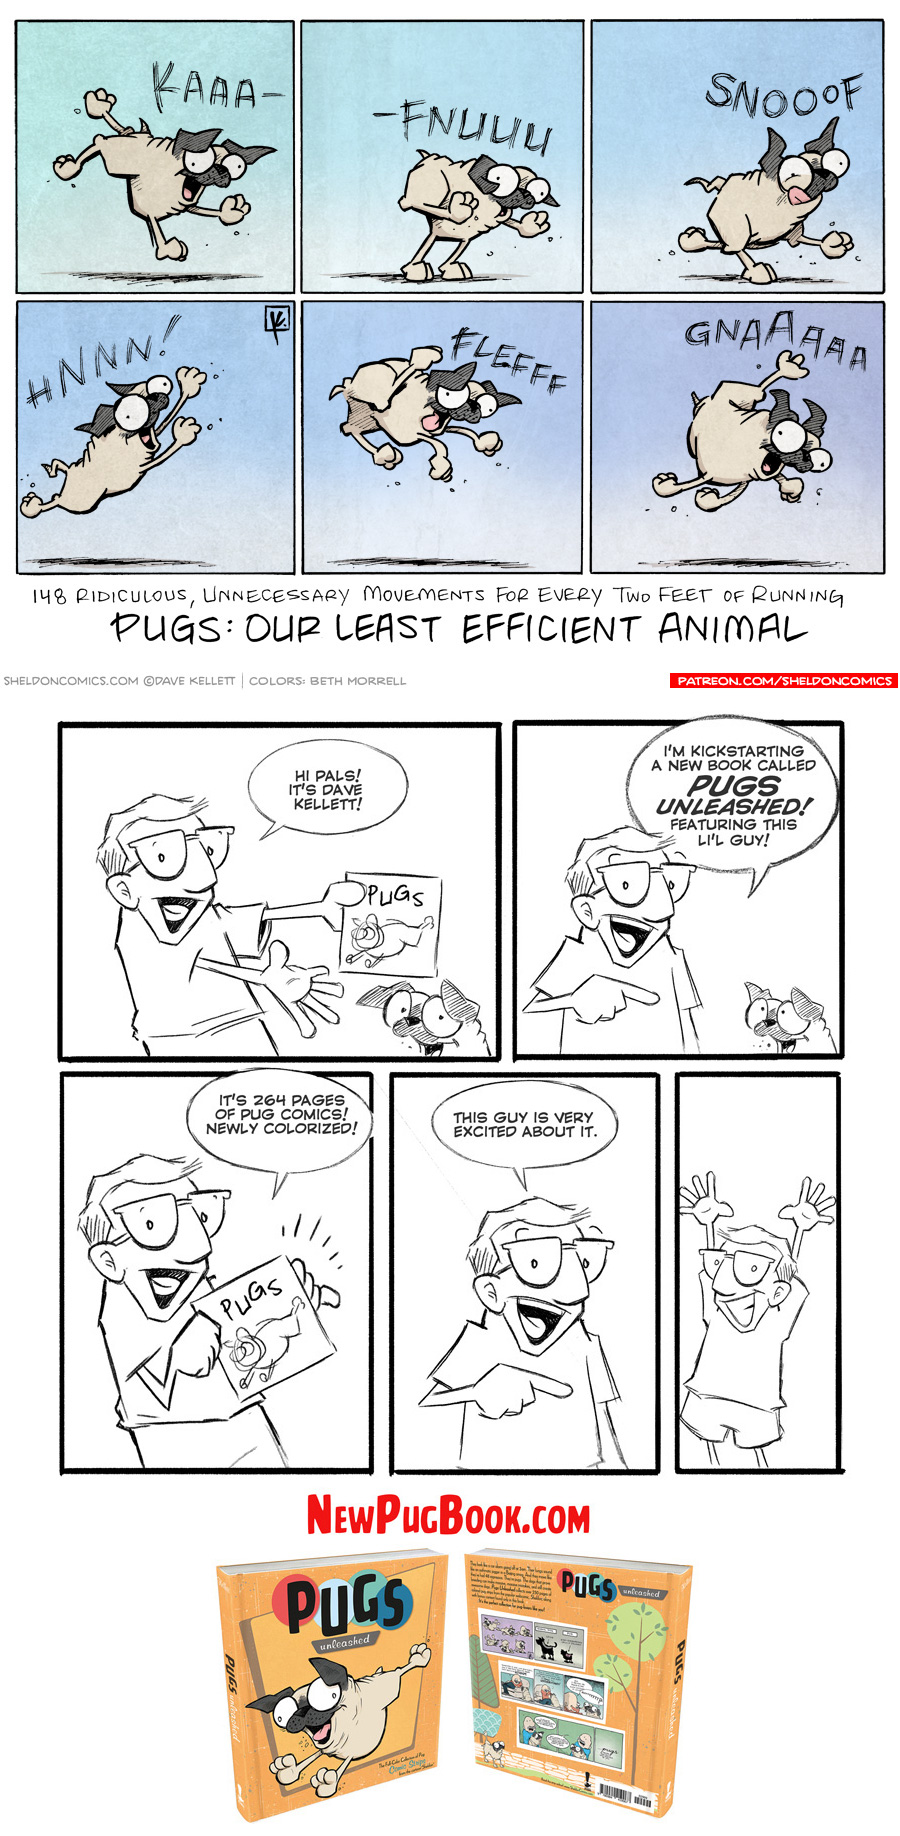 strip for March / 8 / 2018 - Our Least Efficient Animal